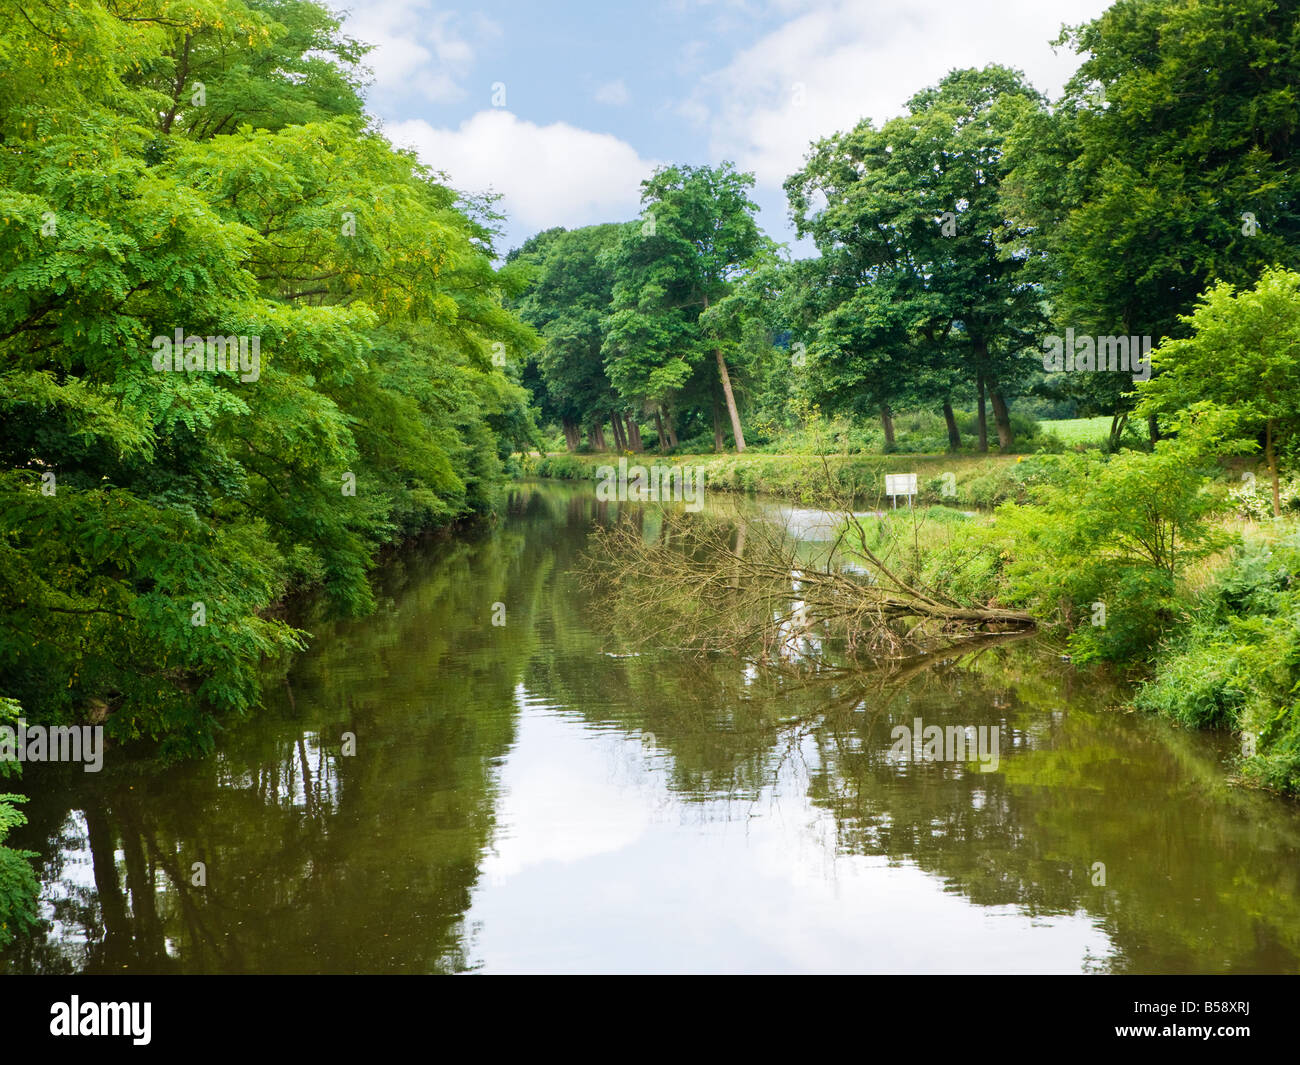 The picturesque Nantes Brest canal as it flows through rural Morbihan Brittany France Europe - Stock Image